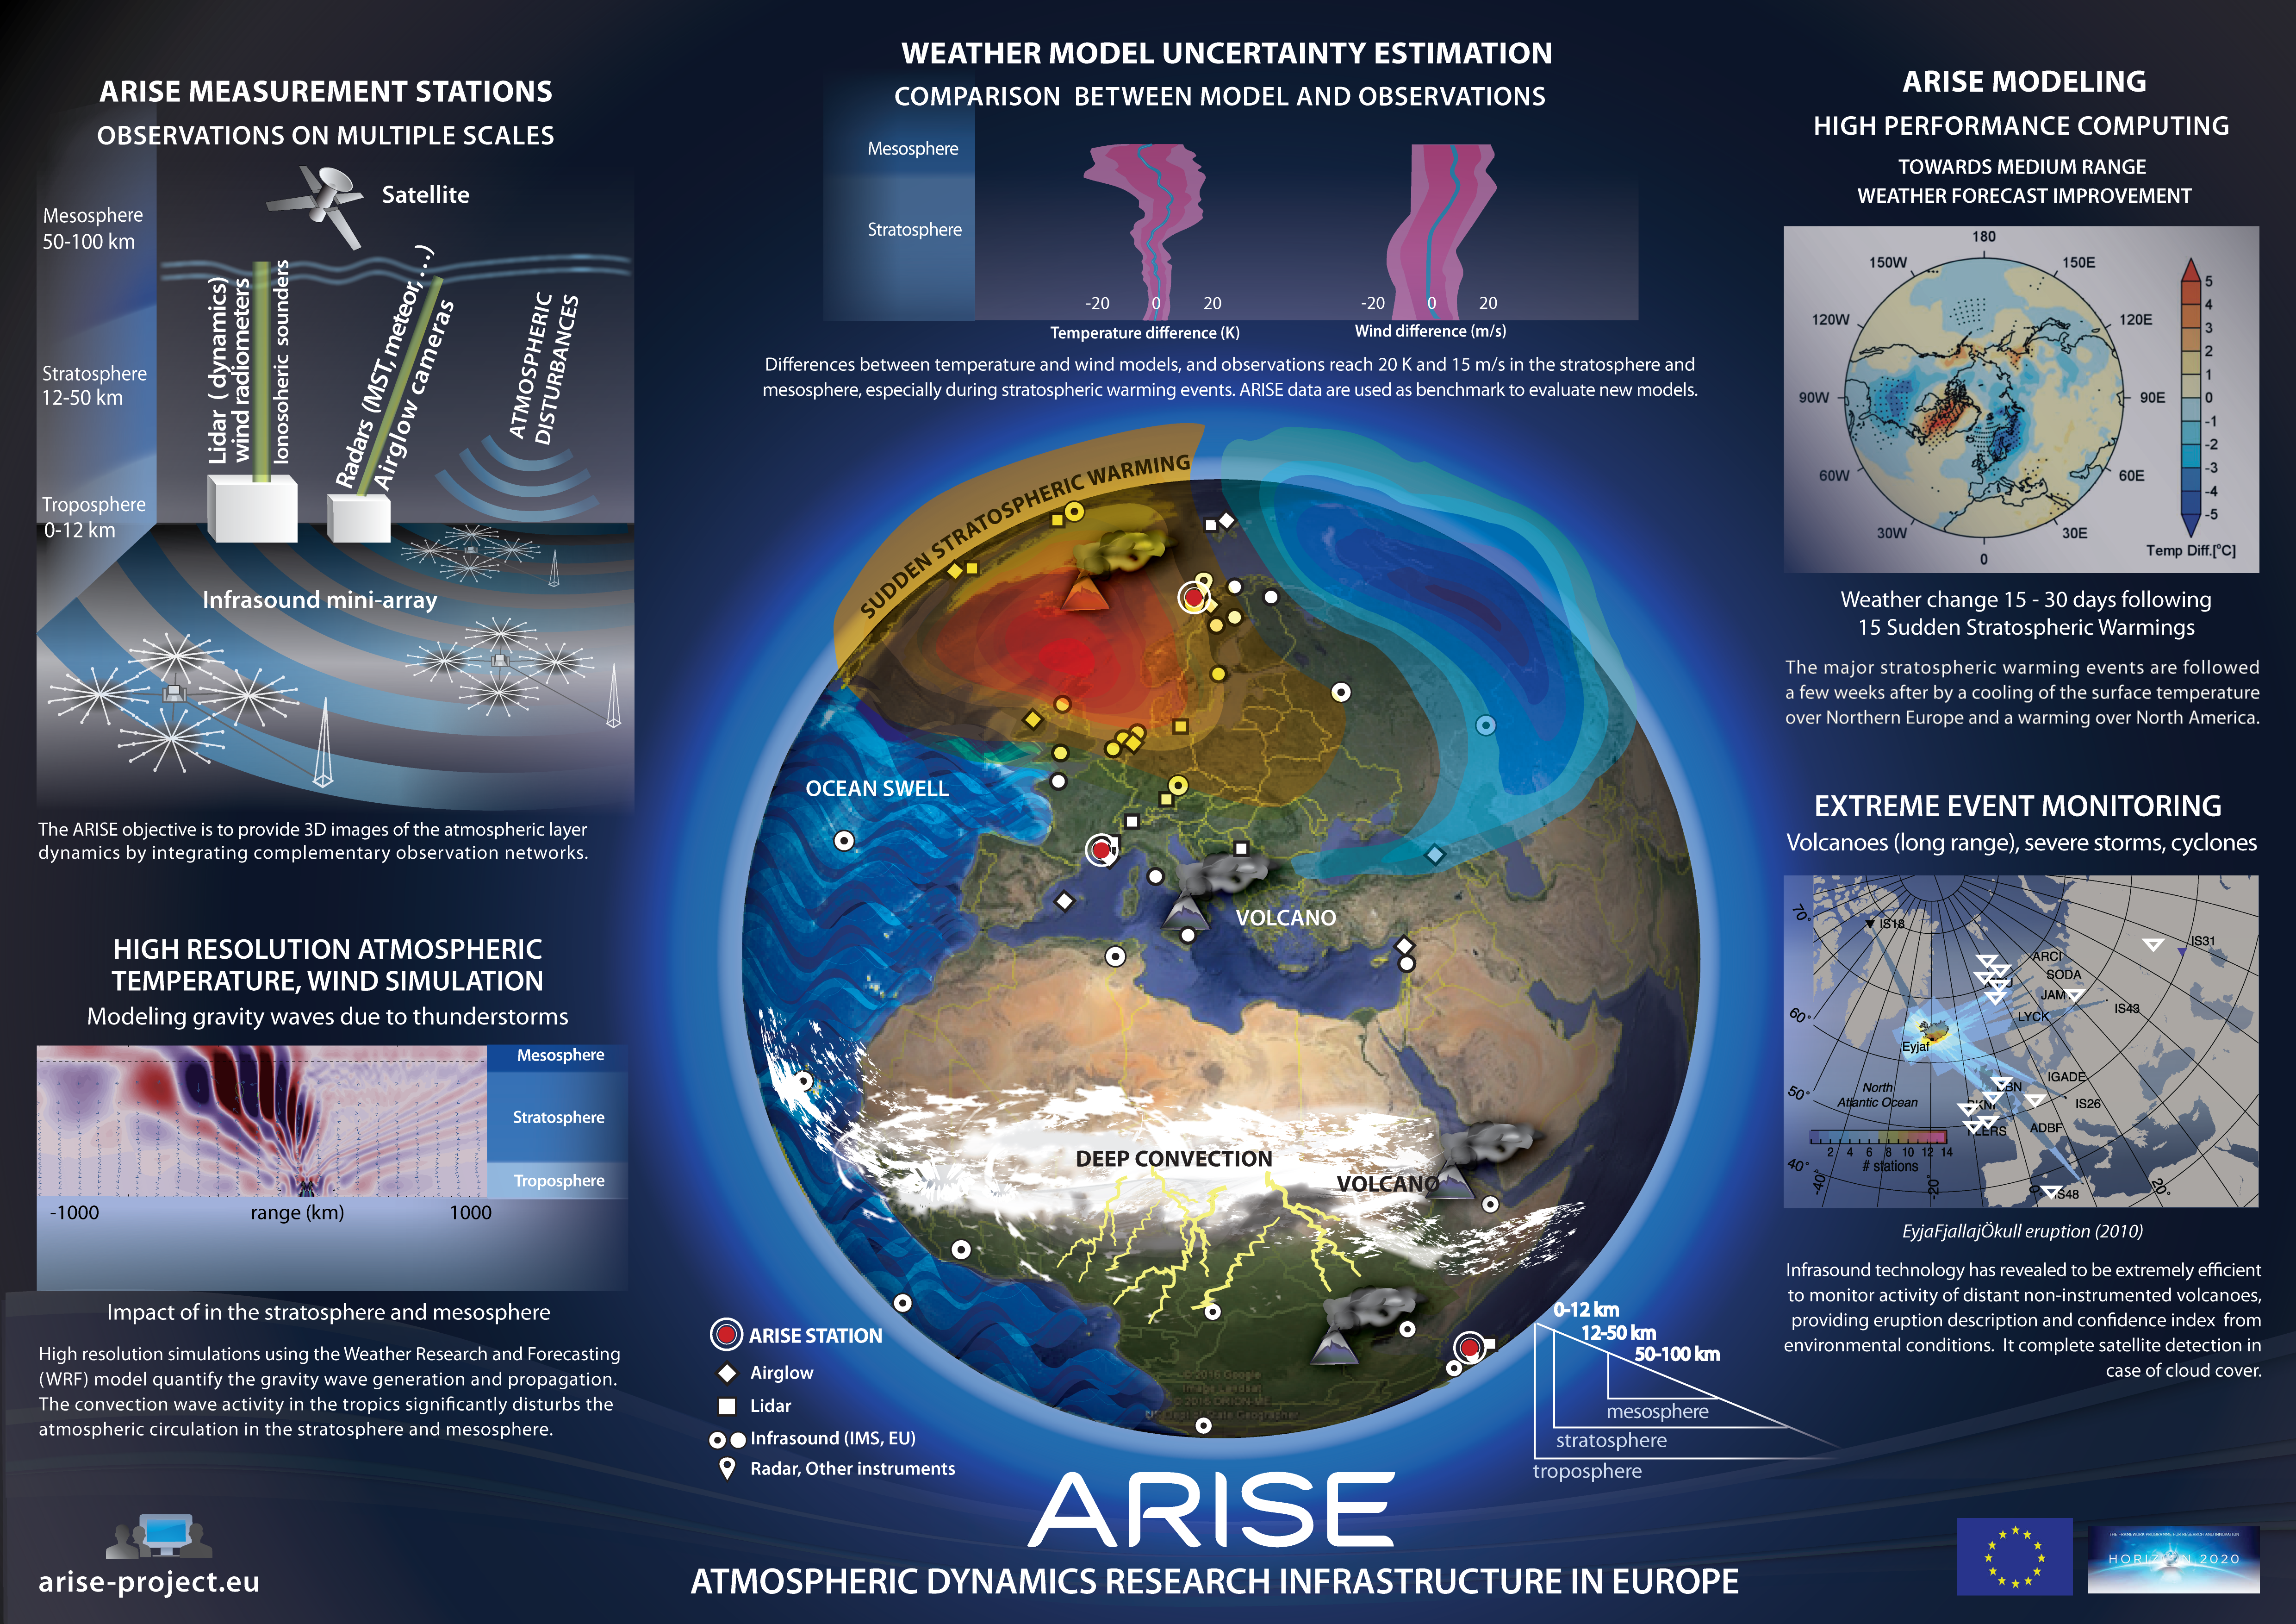 Logo ARISE : Atmospheric dynamics Research Infrastructure in Europe